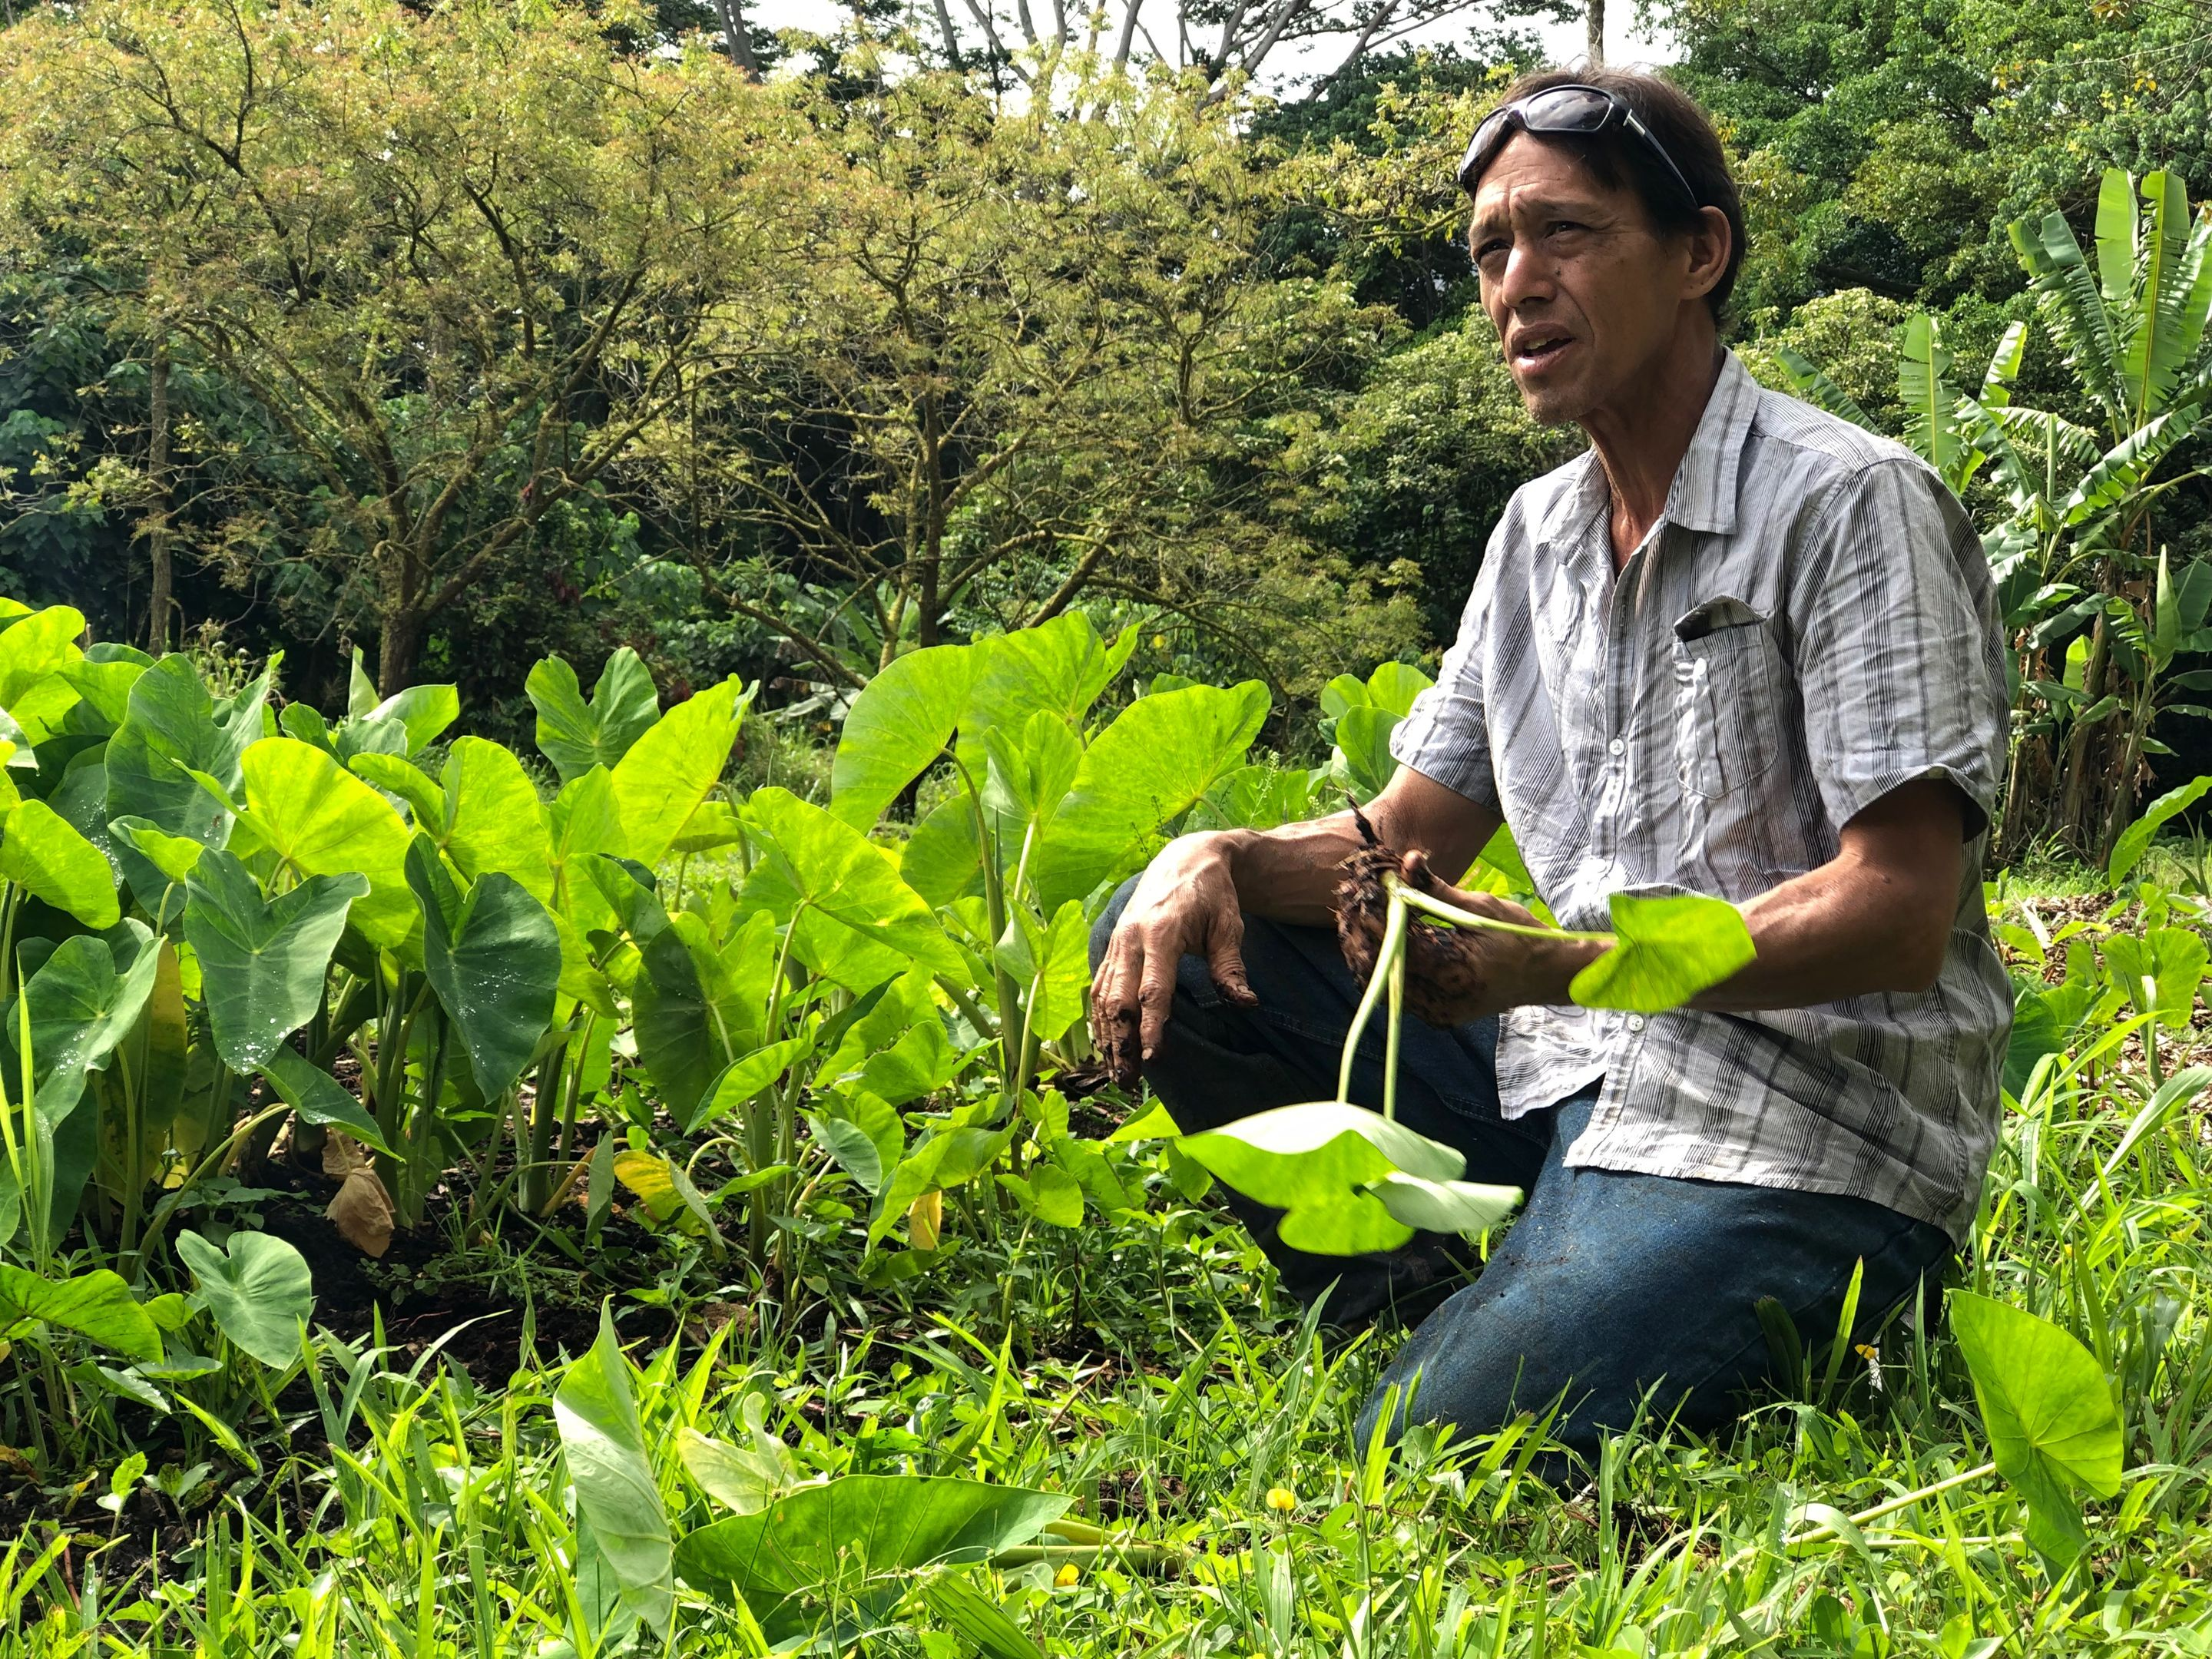 Mark Paikuli-Stride explains how students working in the loʻi learn about science, Hawaiian history, and connect with the environment.